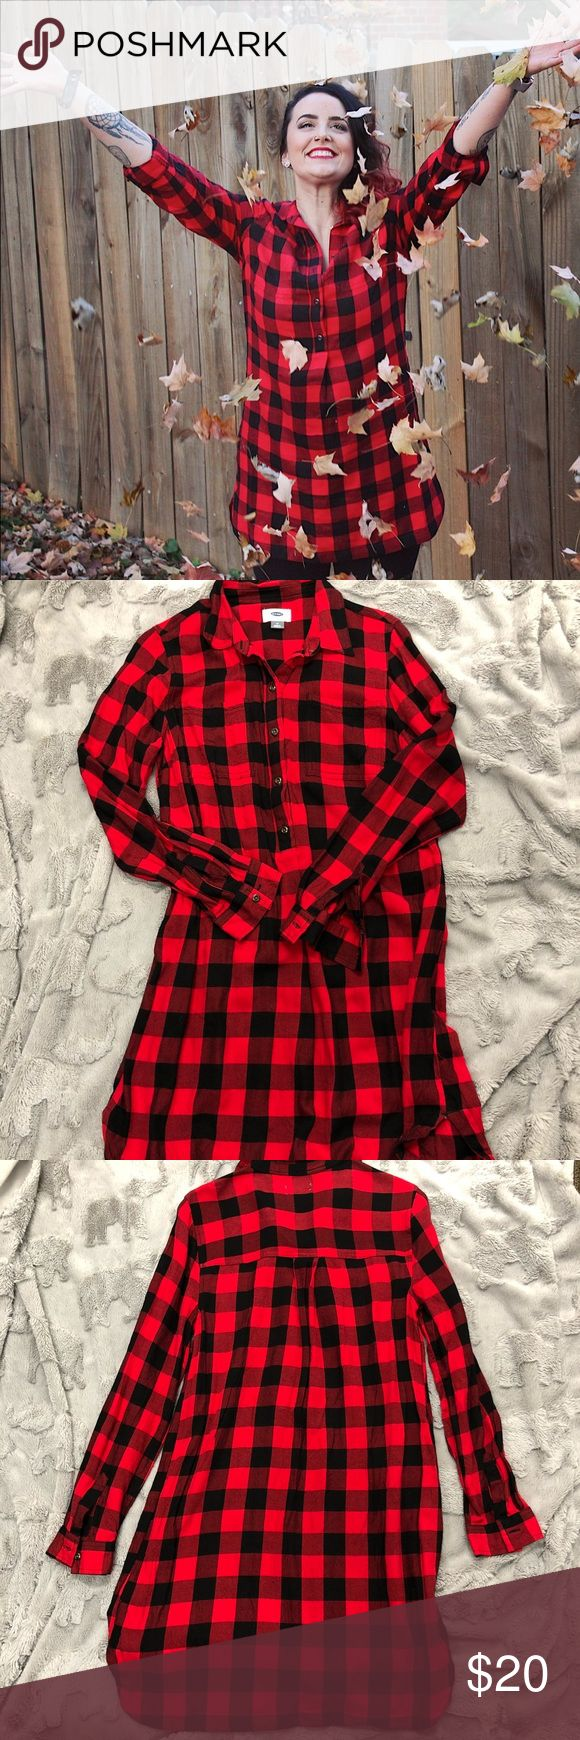 Old Navy Plaid Shirt Dress Adorable pullover shirt dress with black & red plaid. Great for year round wear. Can be layered for fall/winter or alone for spring/summer. Only worn twice & like new. Old Navy Tops Tunics